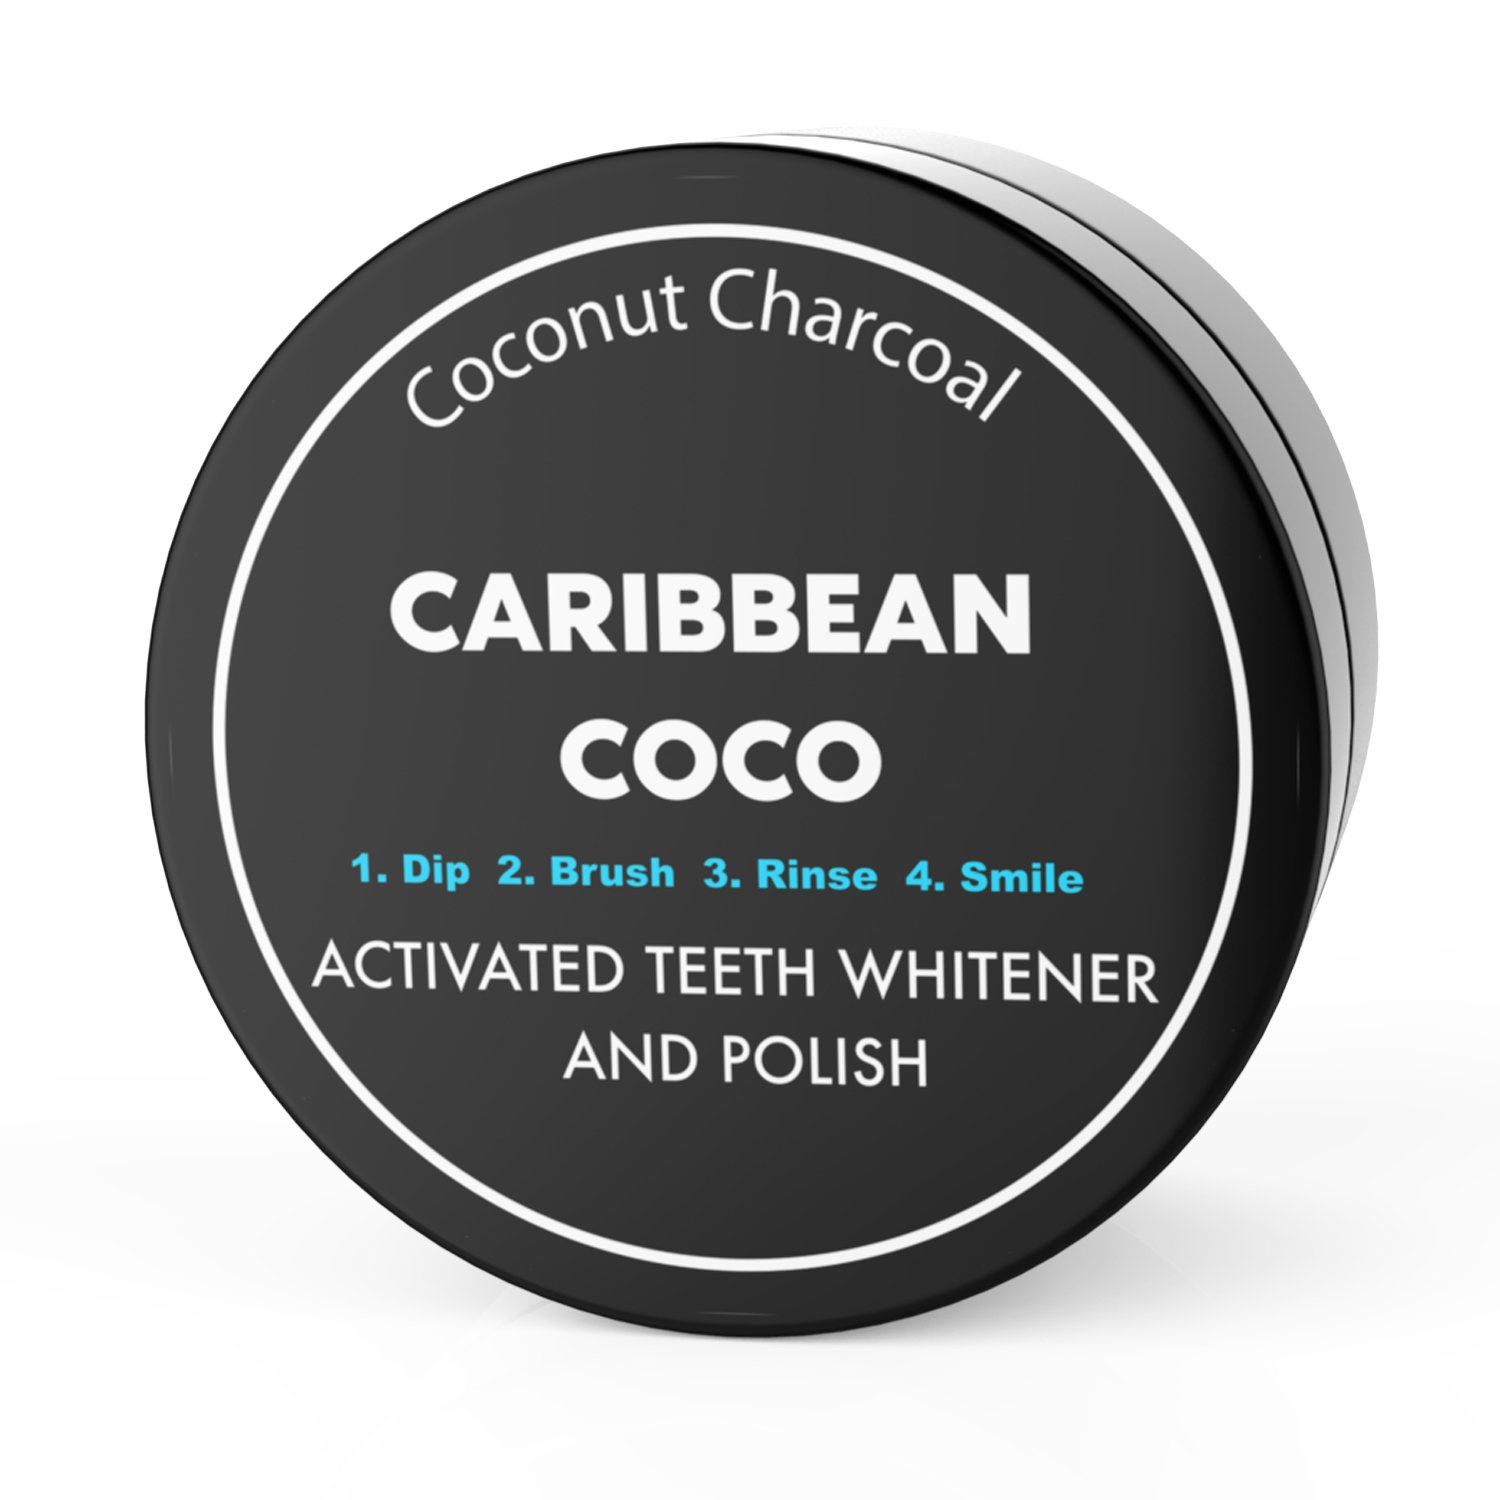 Caribbean Coco - Coconut Carbon Charcoal - Organic Teeth Polishing Charcoal Toothpaste & Mouth Detoxifier by Caribbean Coco (Image #1)